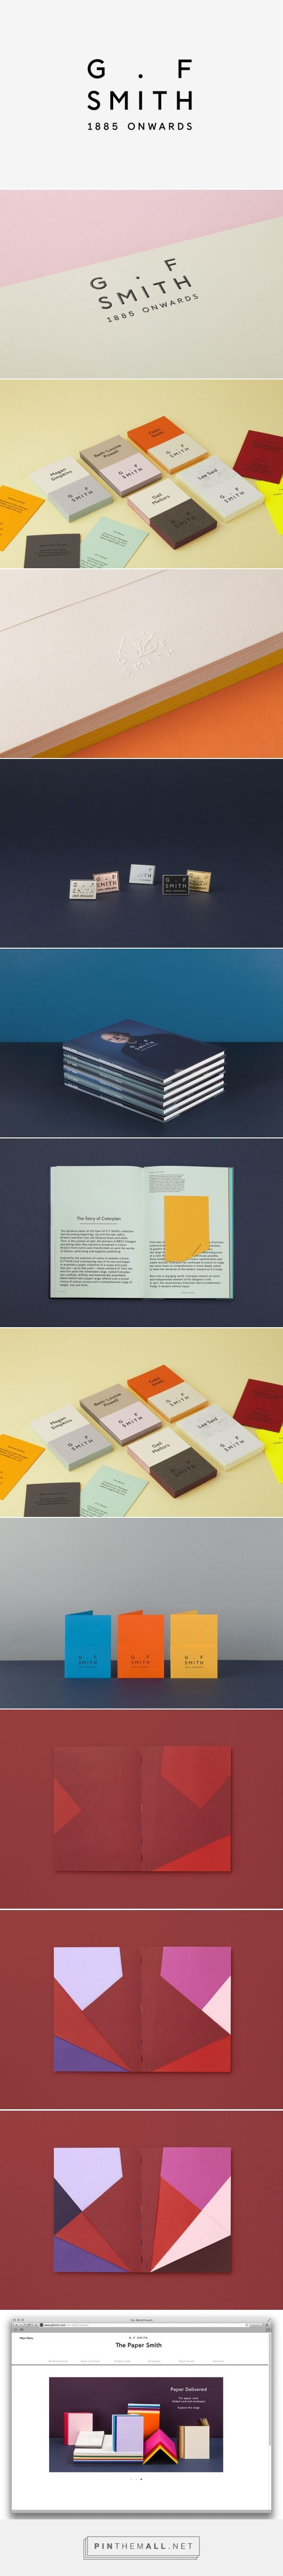 Logo and Brand Identity for G . F Smith by Made Thought - BP&O - created via http://pinthemall.net